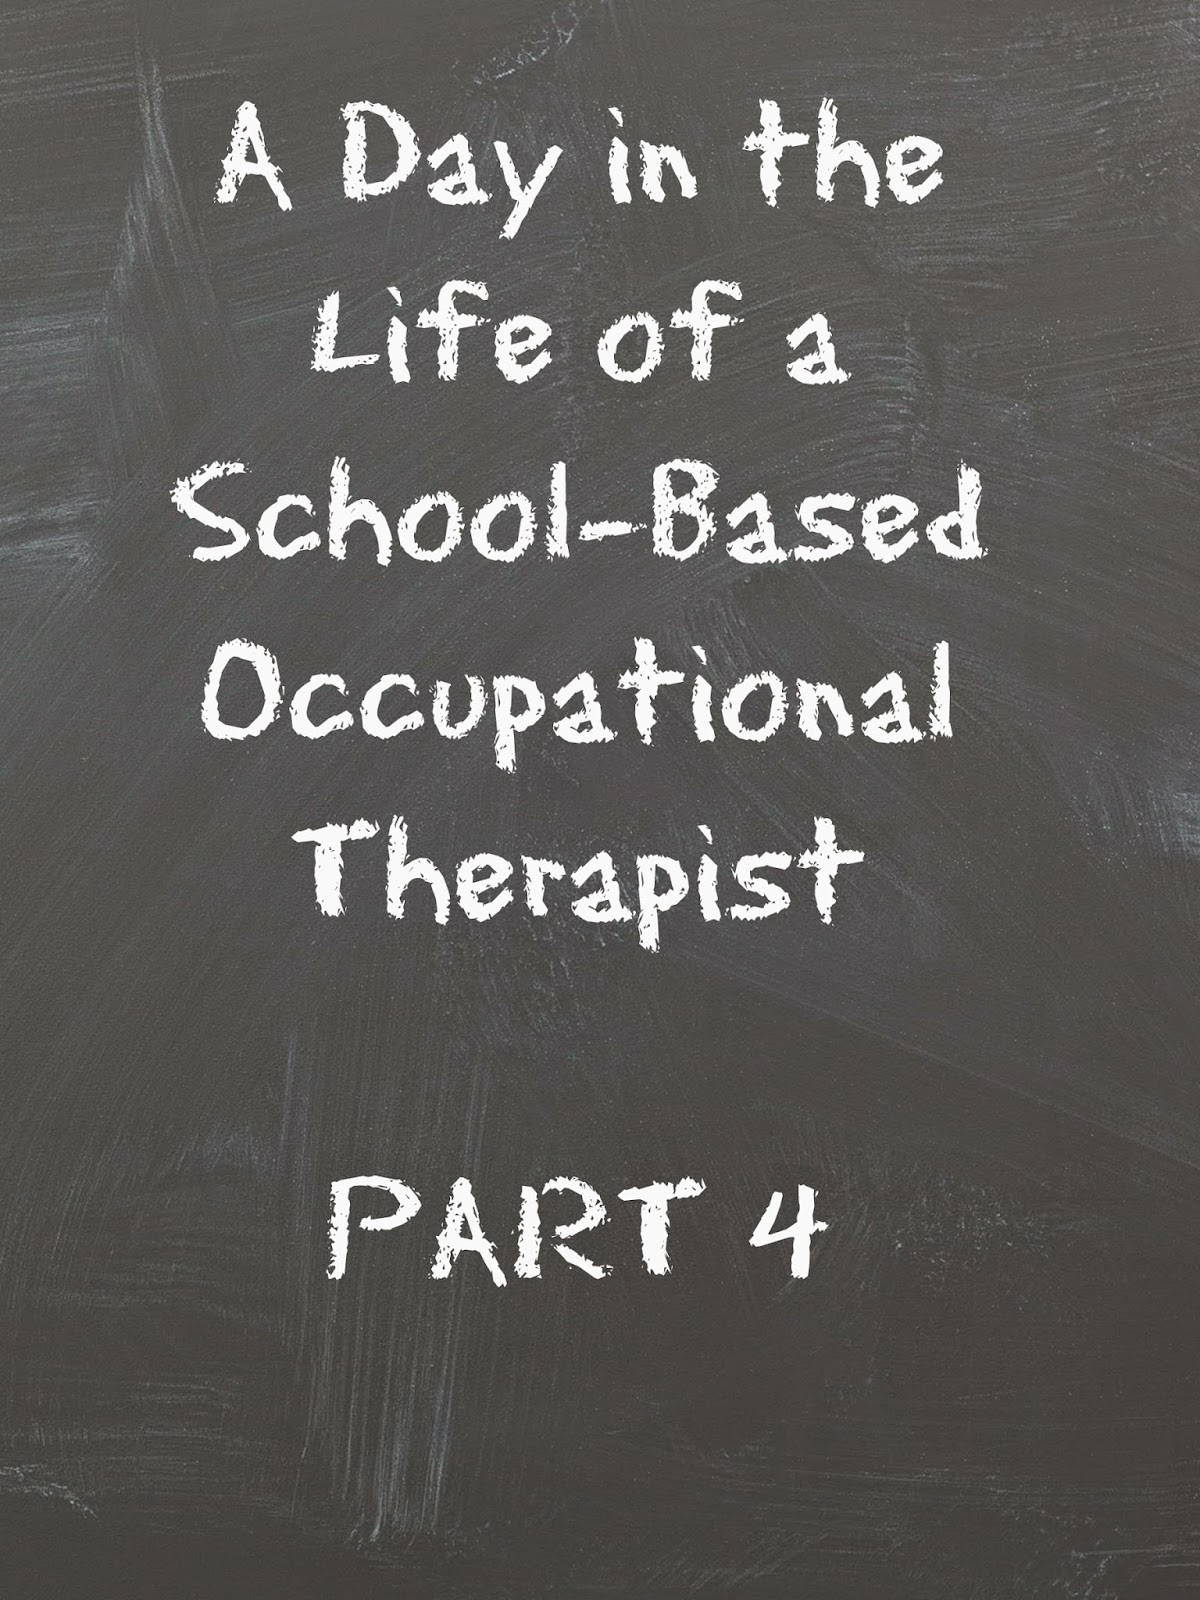 Occupational Therapy Assistant- I am a career changer looking to pursue an OTA position in NYC.?